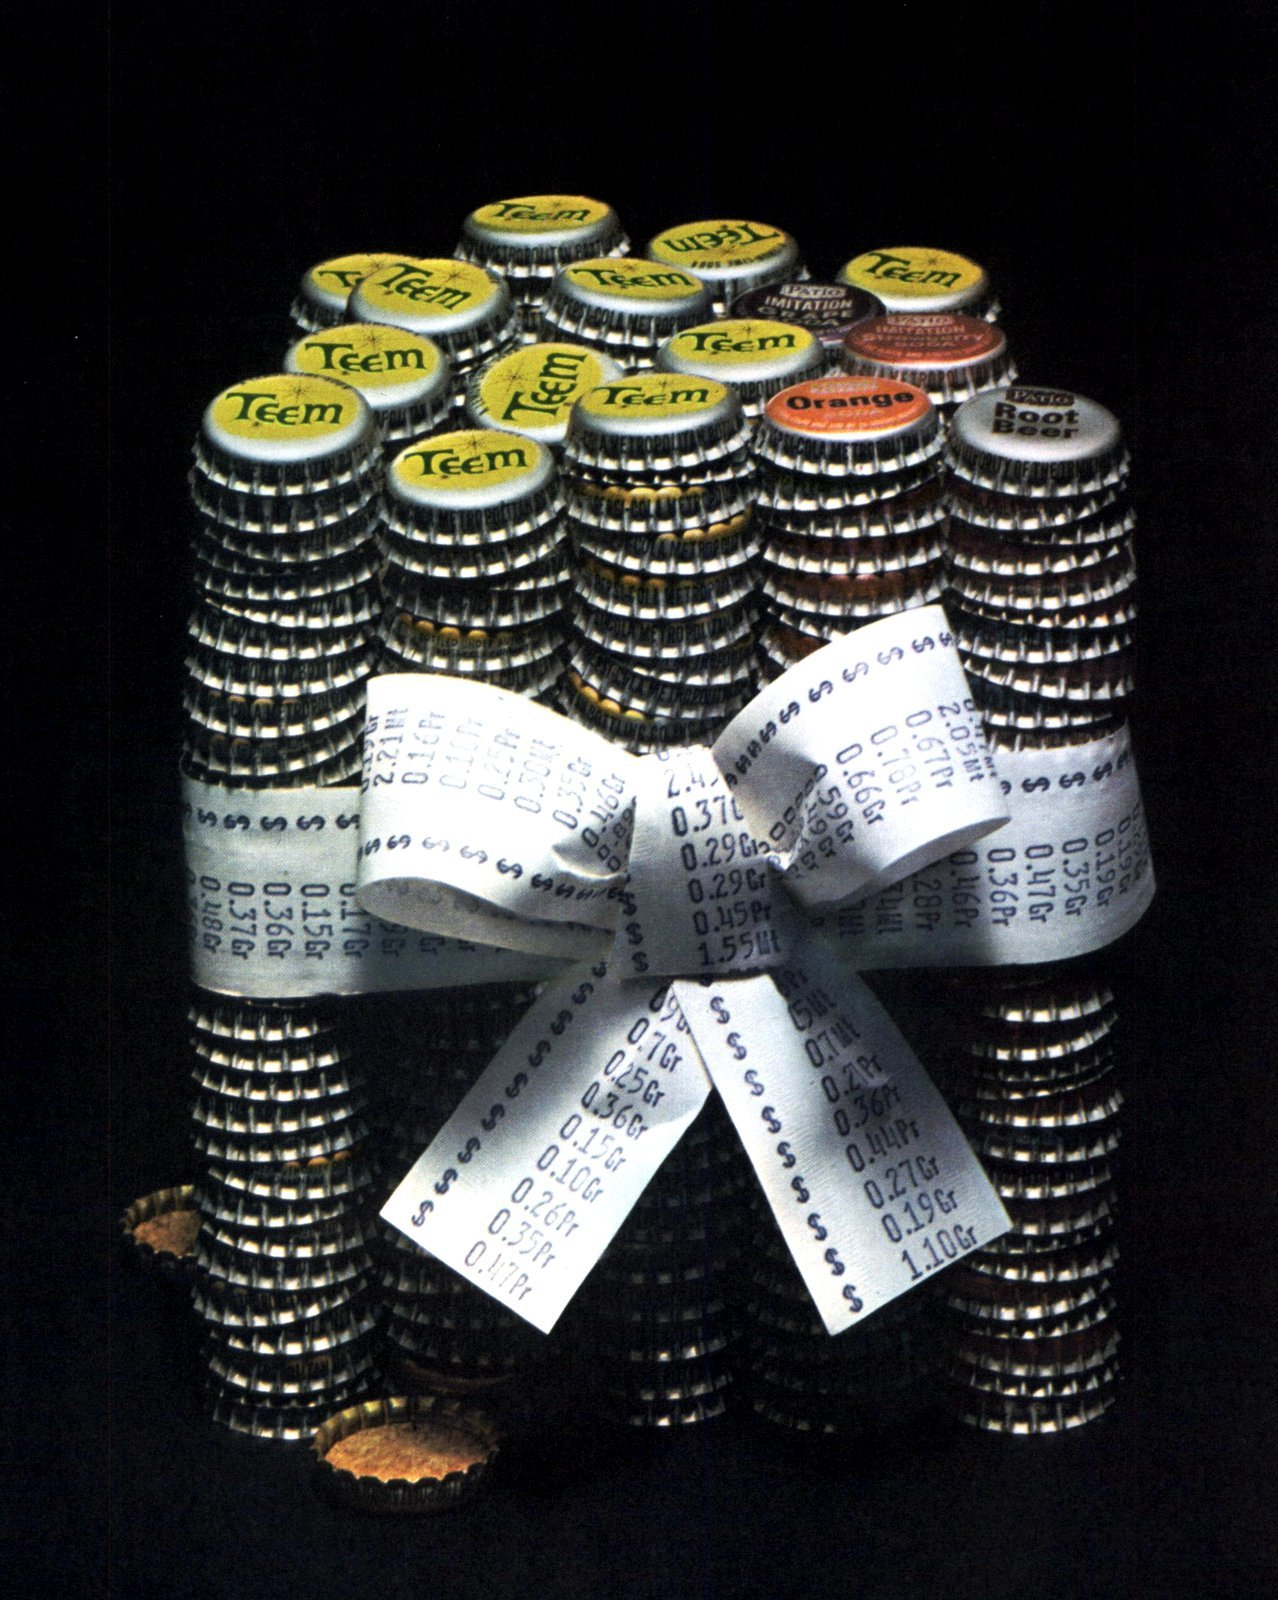 Stacks of old Teem bottlecaps (1962)